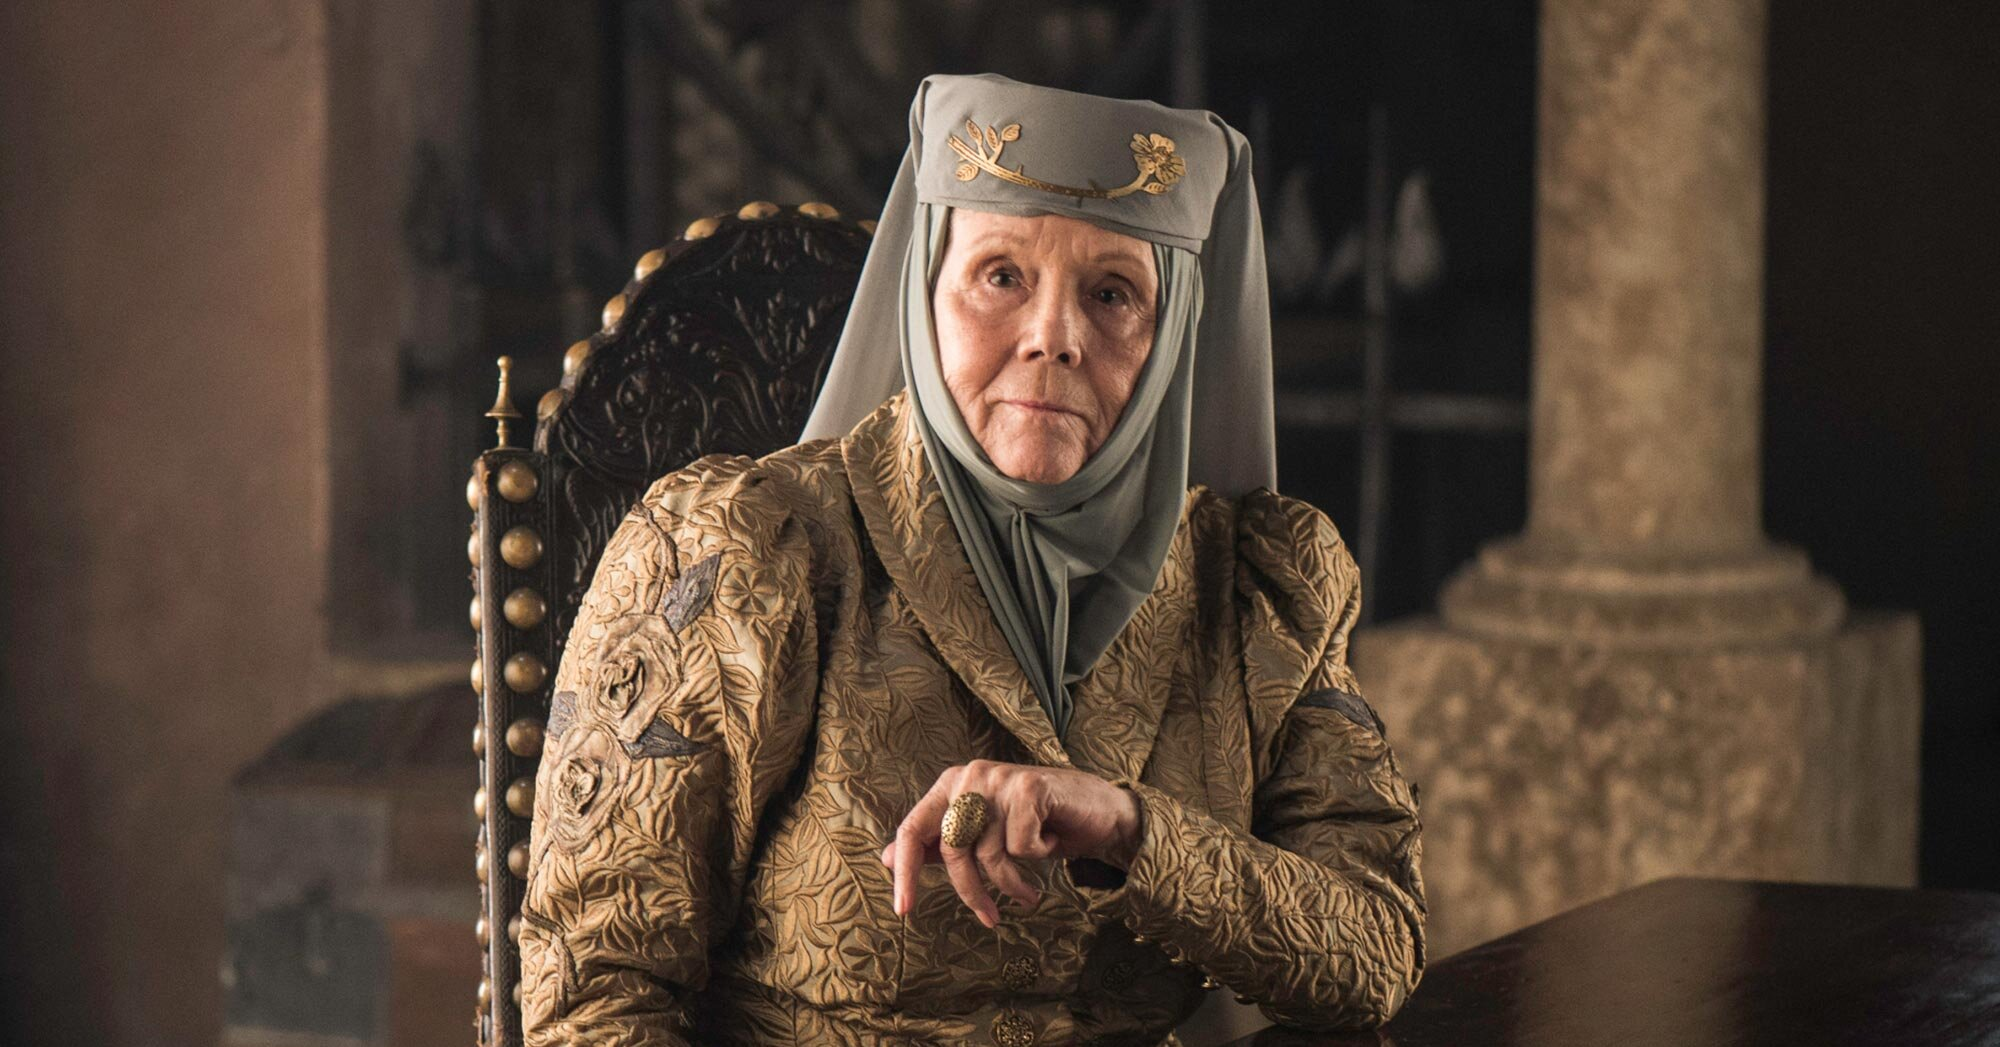 Diana Rigg once stormed off the 'Game of Thrones' set (and inspired all)